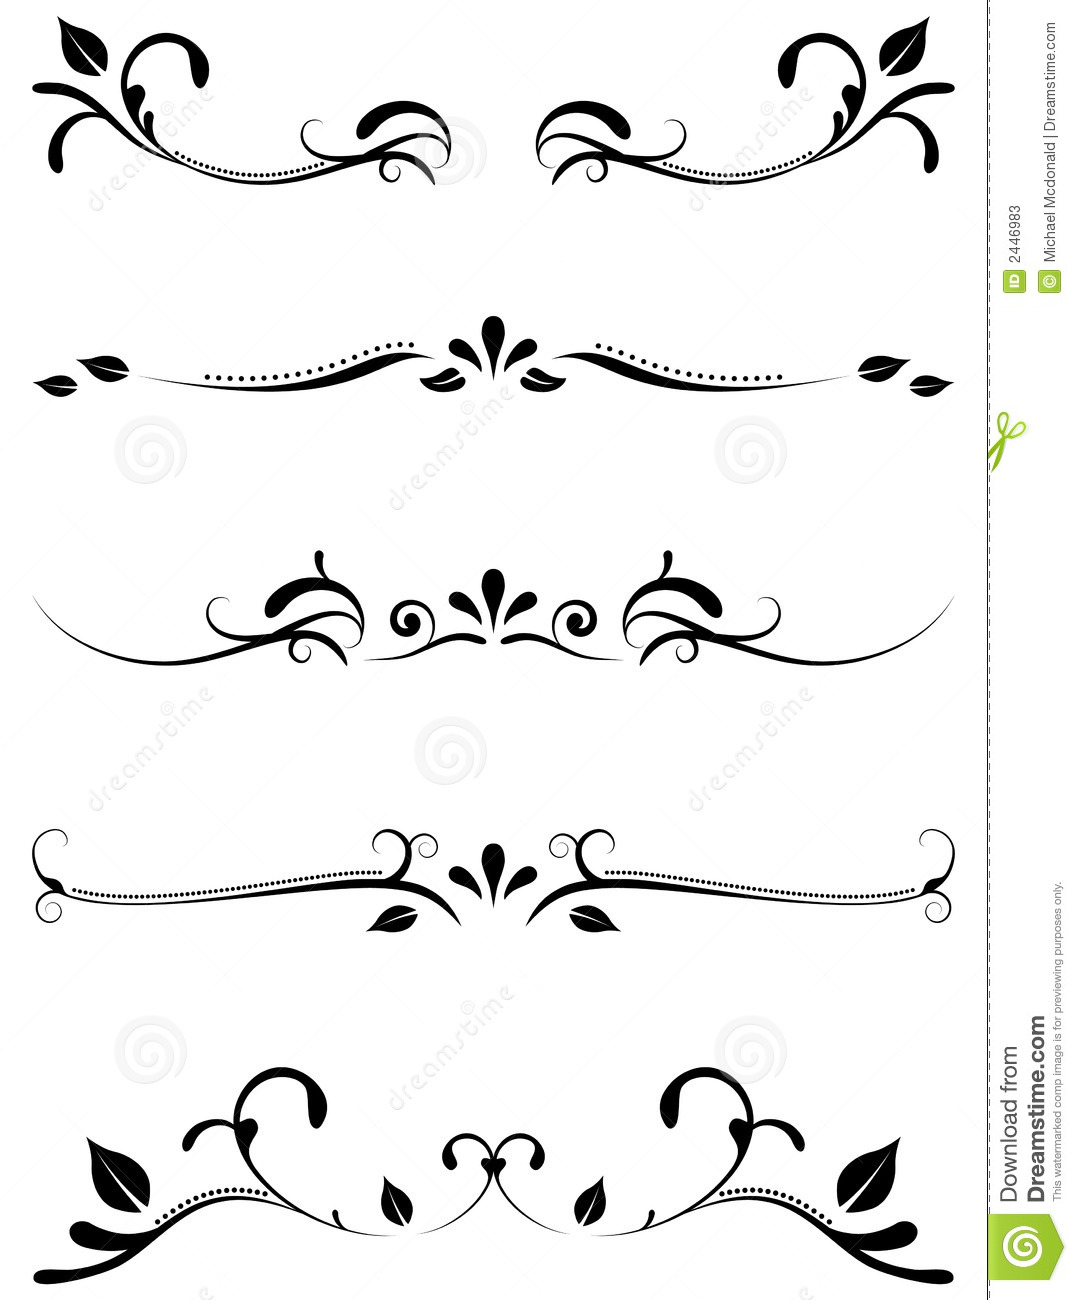 decorative ornamental rules stock photos  image  - ornamental page rules tattoo border tribal black decor decoration accent